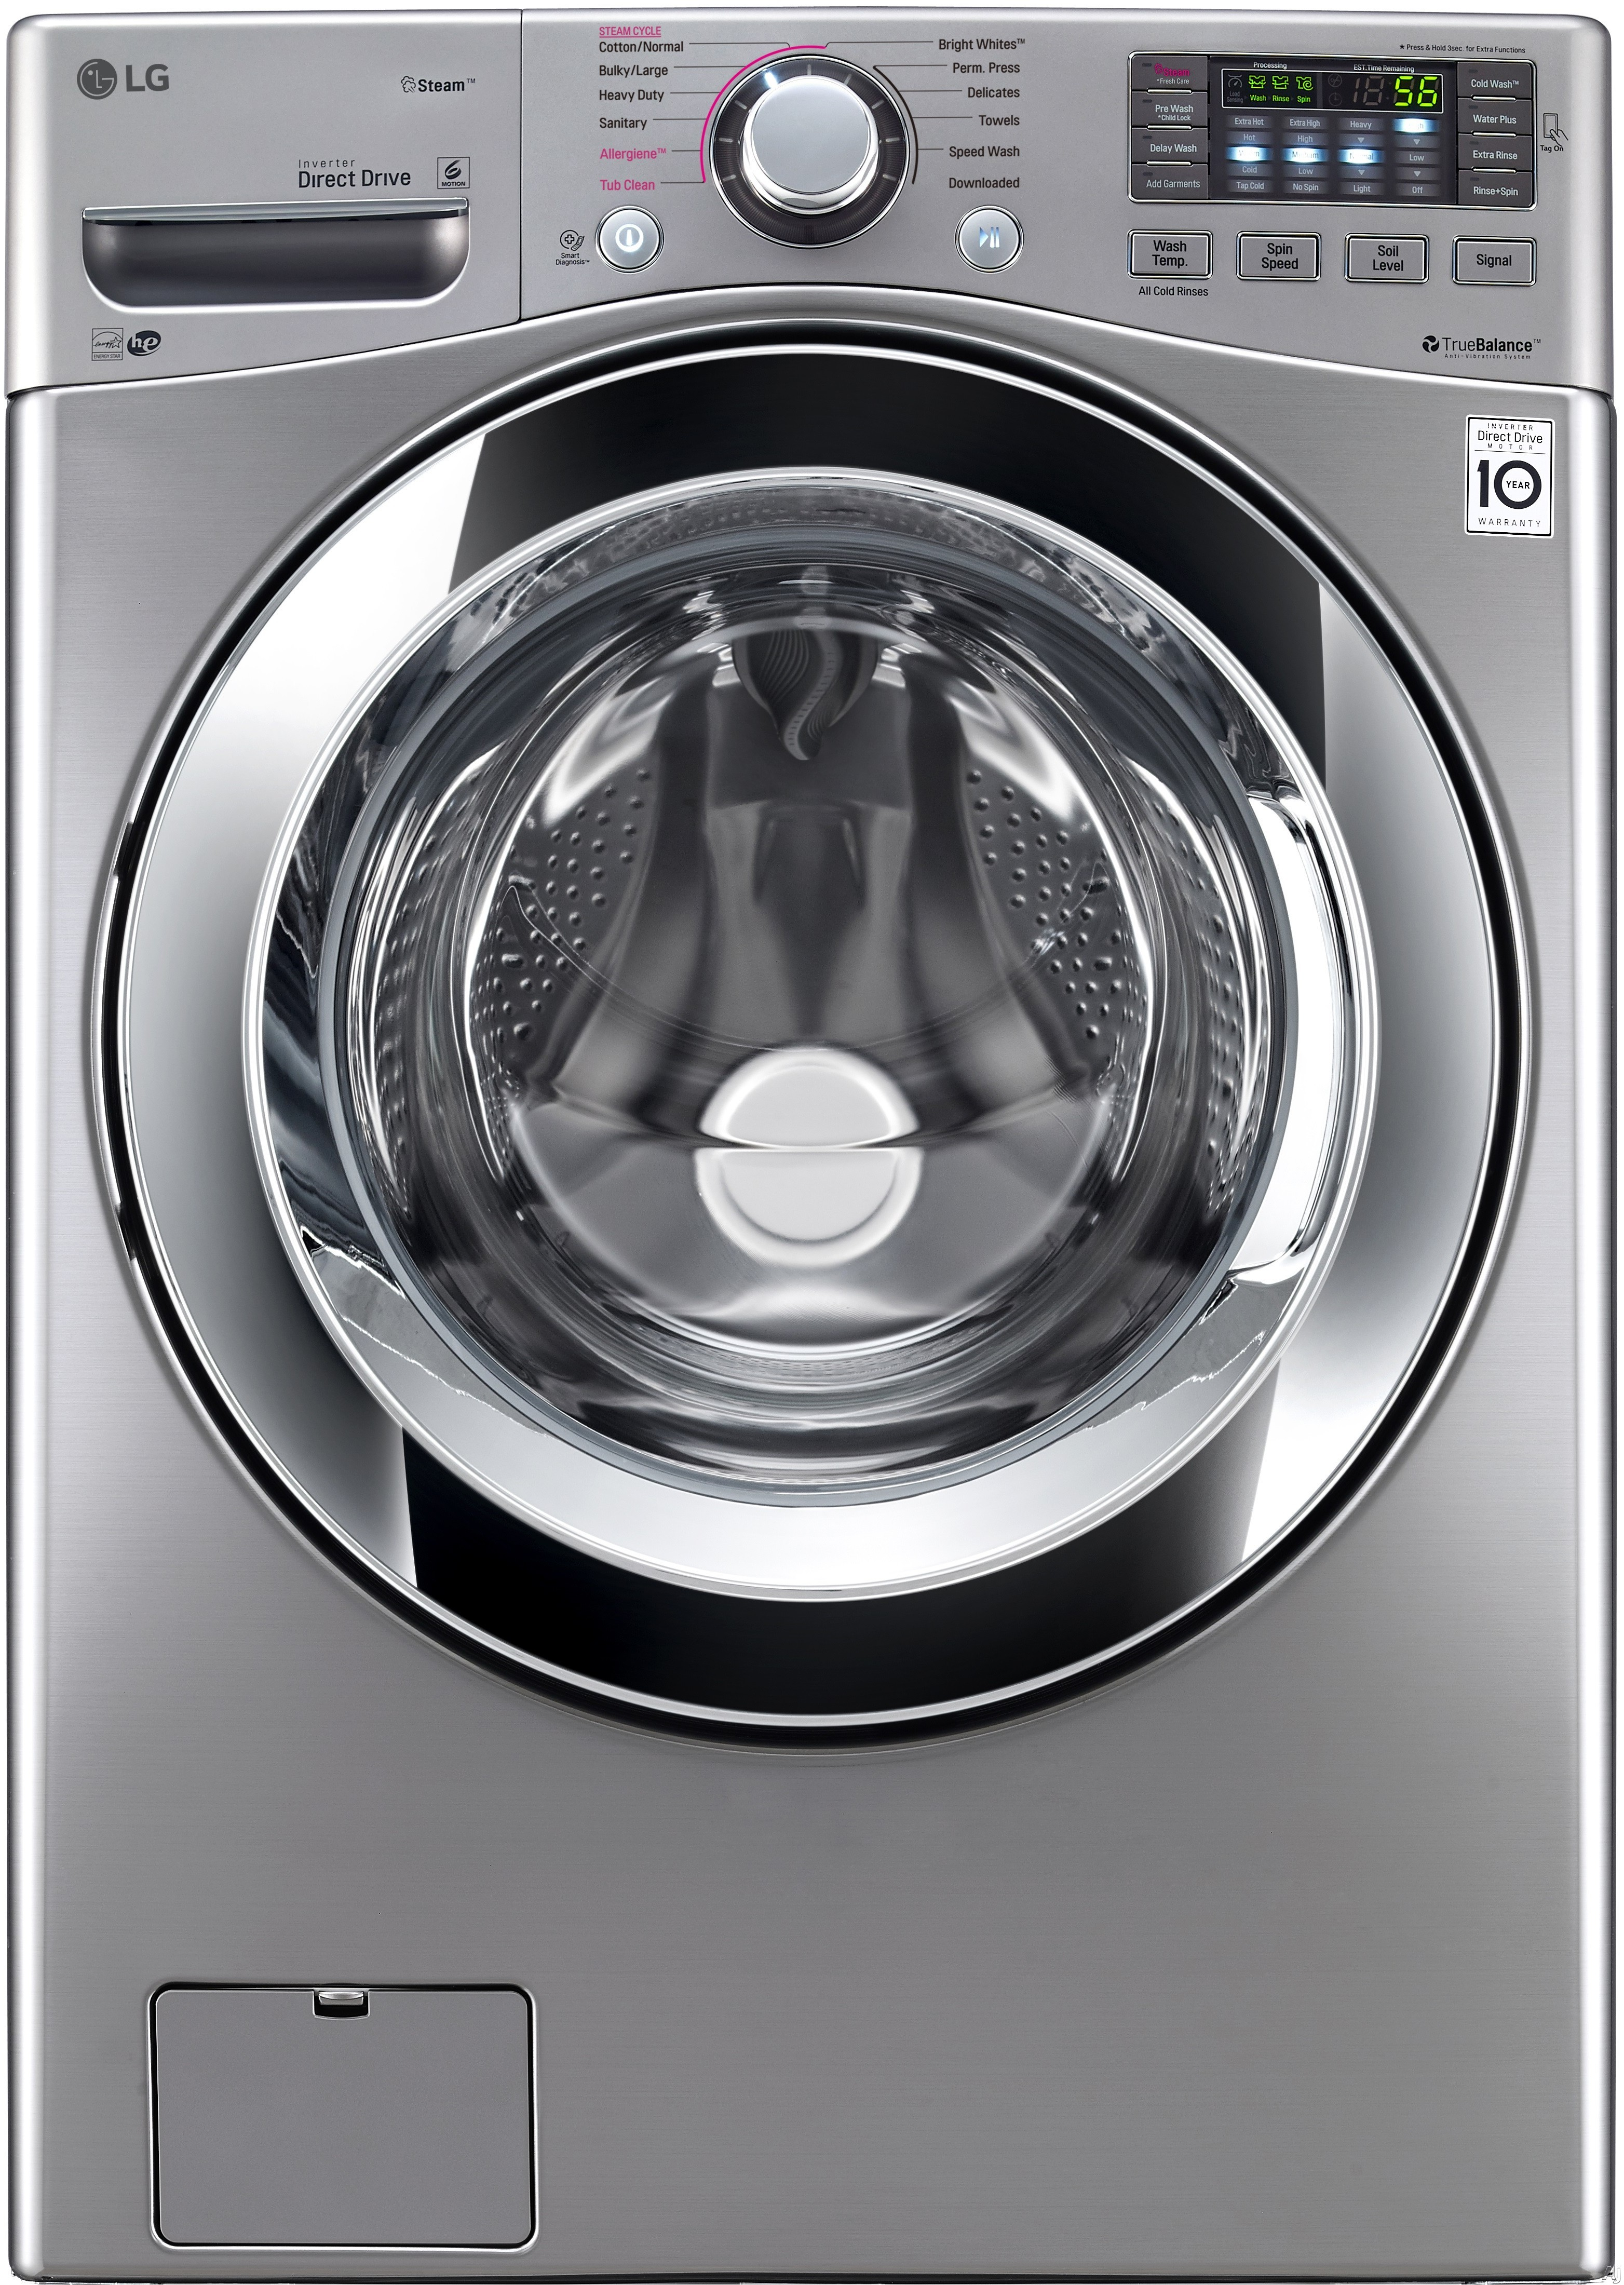 LG WM3670HVA 27 Inch 4.5 cu. ft. Front Load Washer with Steam, Smart ThinQ (Wi-Fi), NFC Tag-On Technology, Sanitary Cycle, 12 Wash Cycles, Allergen Cycle, NeveRust™ Stainless Steel Drum, 4-Tray Dispenser and ENERGY STAR®: Graphite Steel WM3670HVA